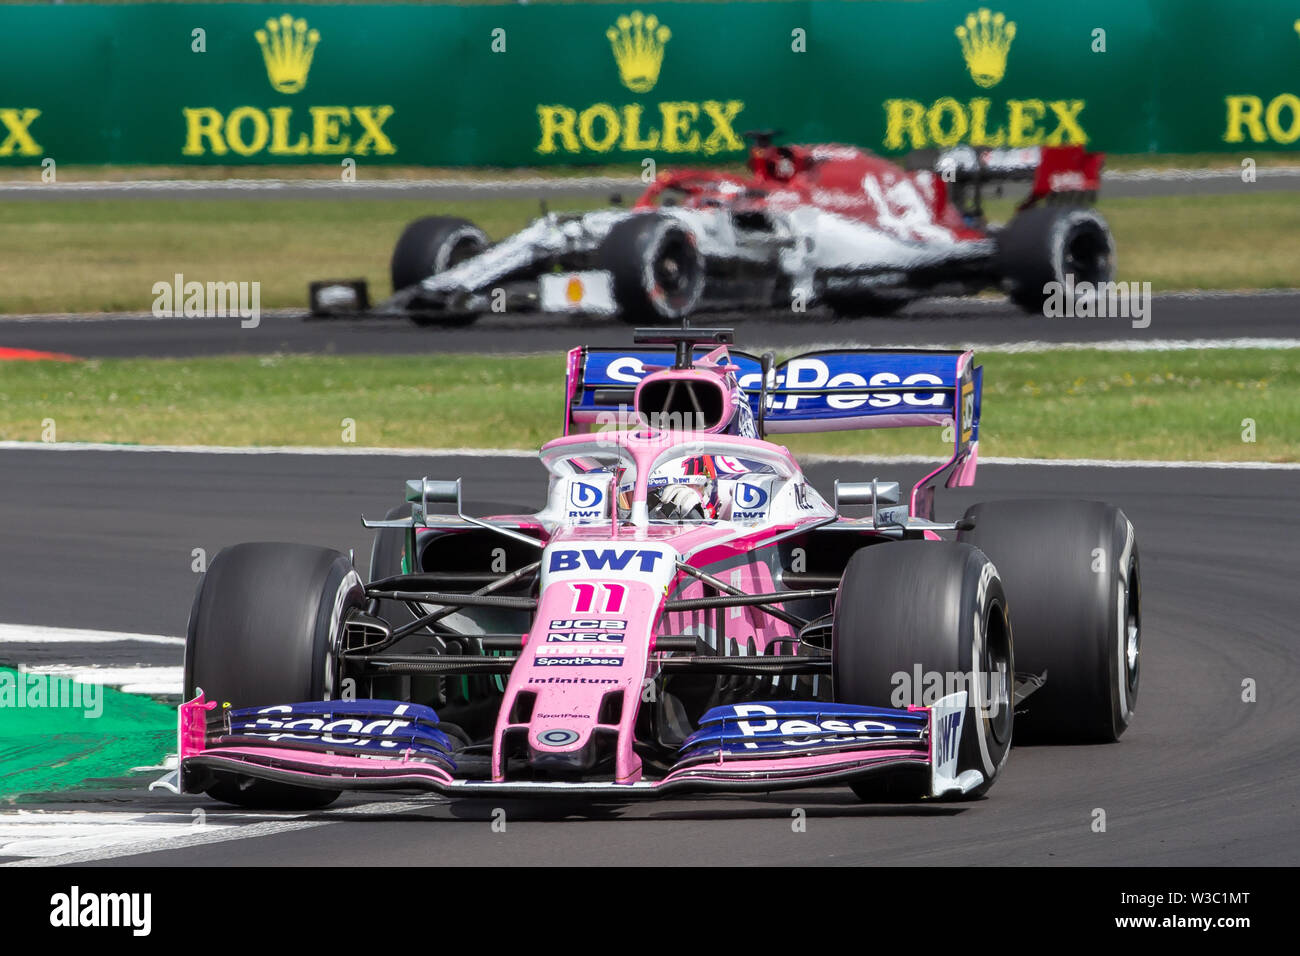 Silverstone, UK. 14th July 2019. FIA F1 Grand Prix of Britain, Race Day; Sergio Perez driving his SportPesa Racing Point F1 Team RP19 Credit: Action Plus Sports Images/Alamy Live News Stock Photo